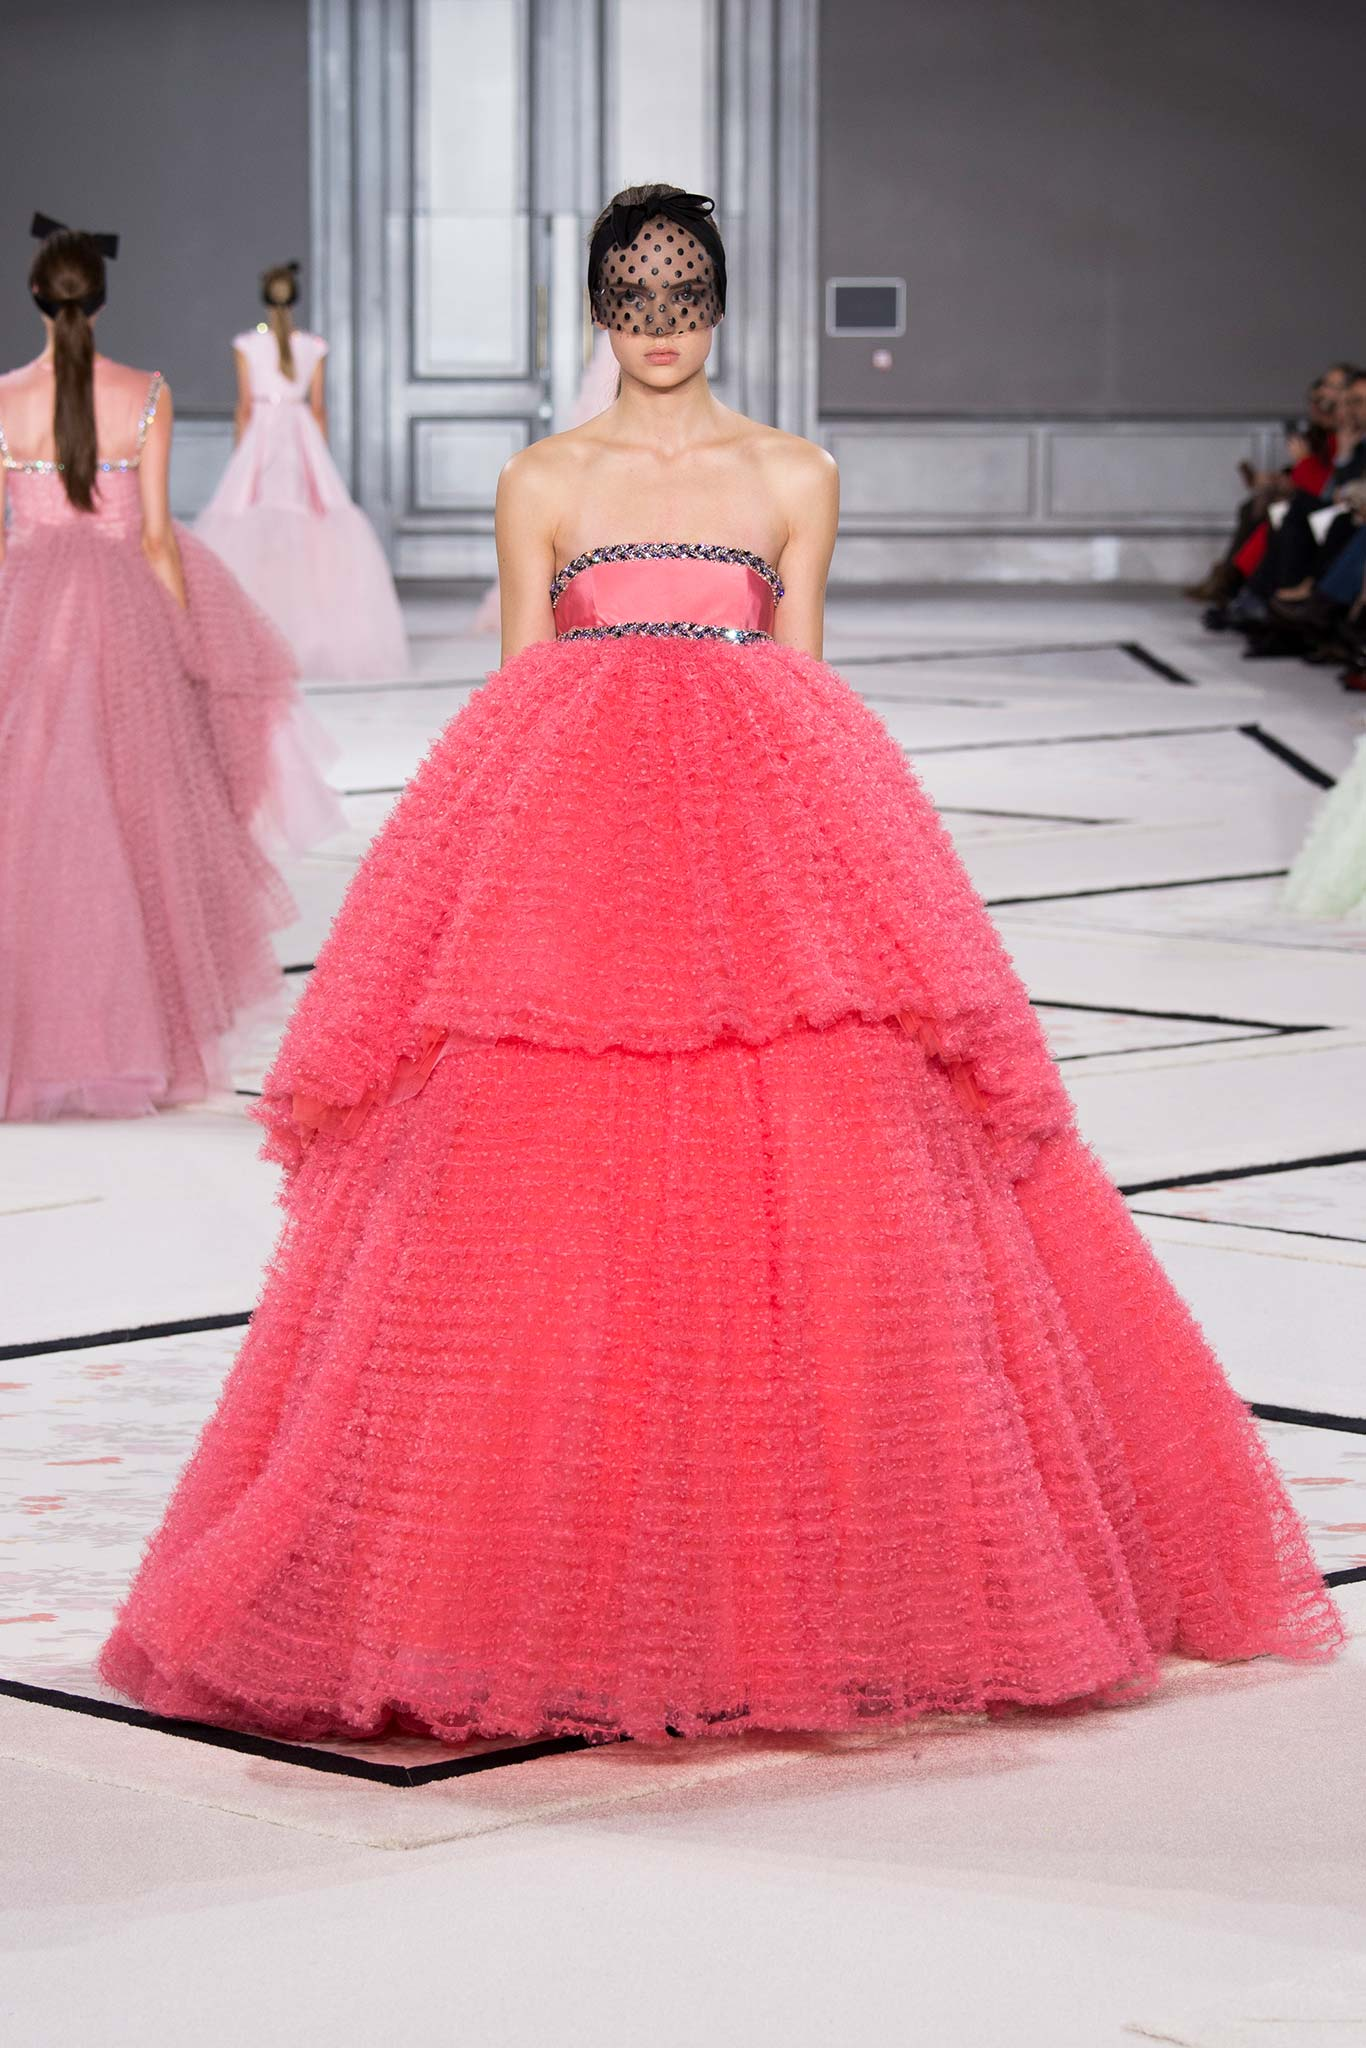 Project Fairytale: Top 10 Looks from the Spring 2015 Couture Shows